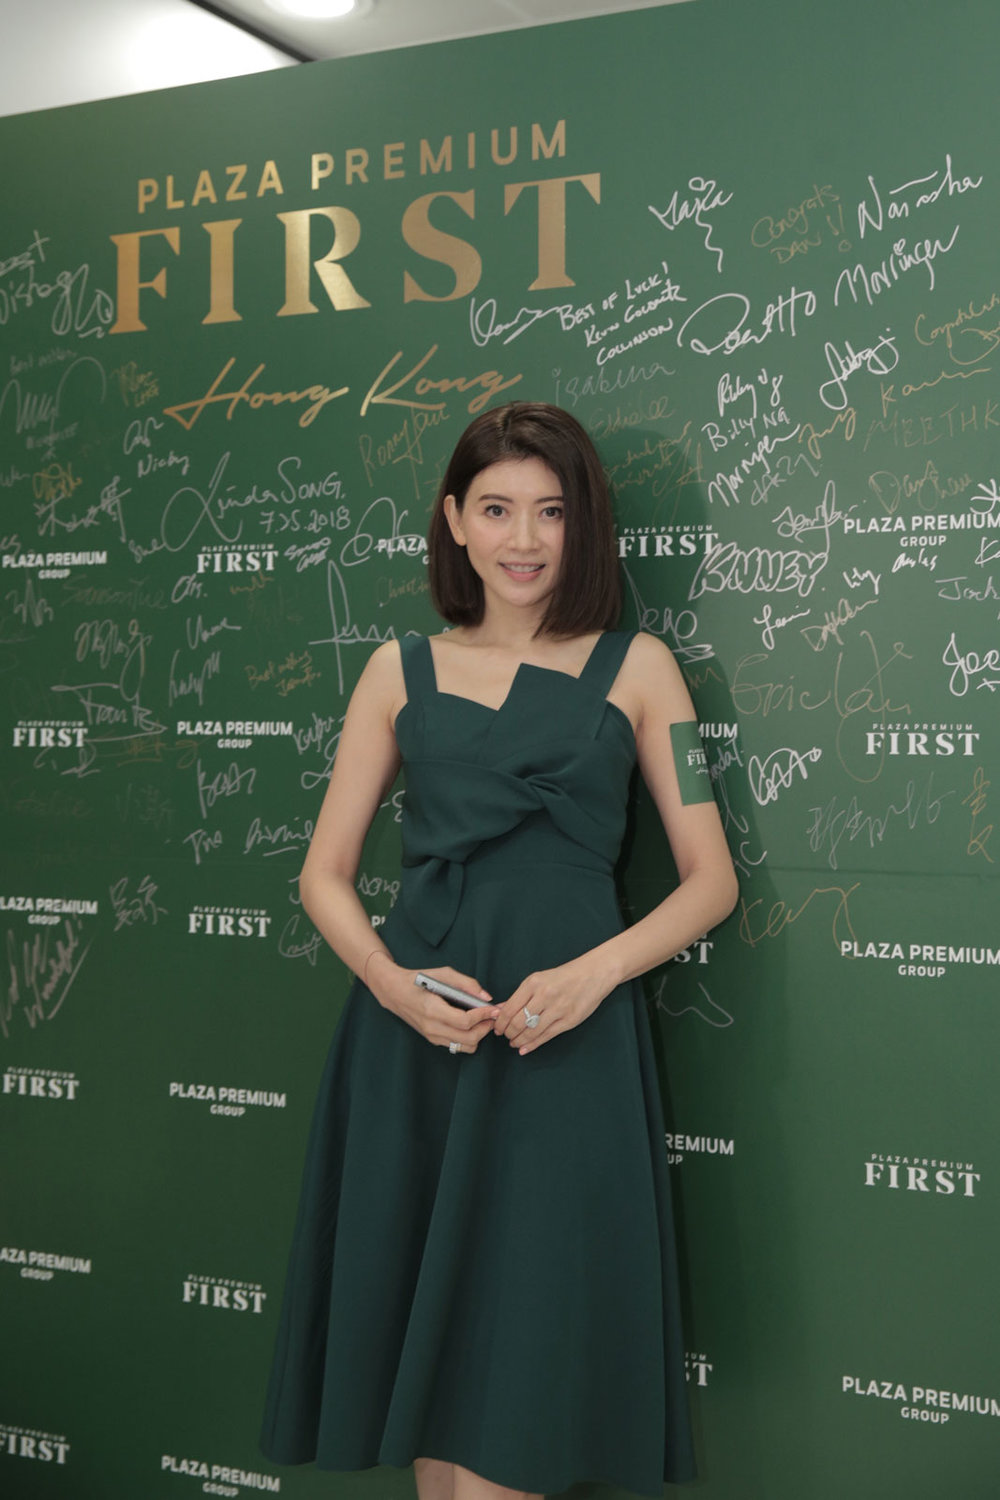 Artist Maria Chen attending the Plaza Premium First Hong Kong Launch Party as guest and Emcee